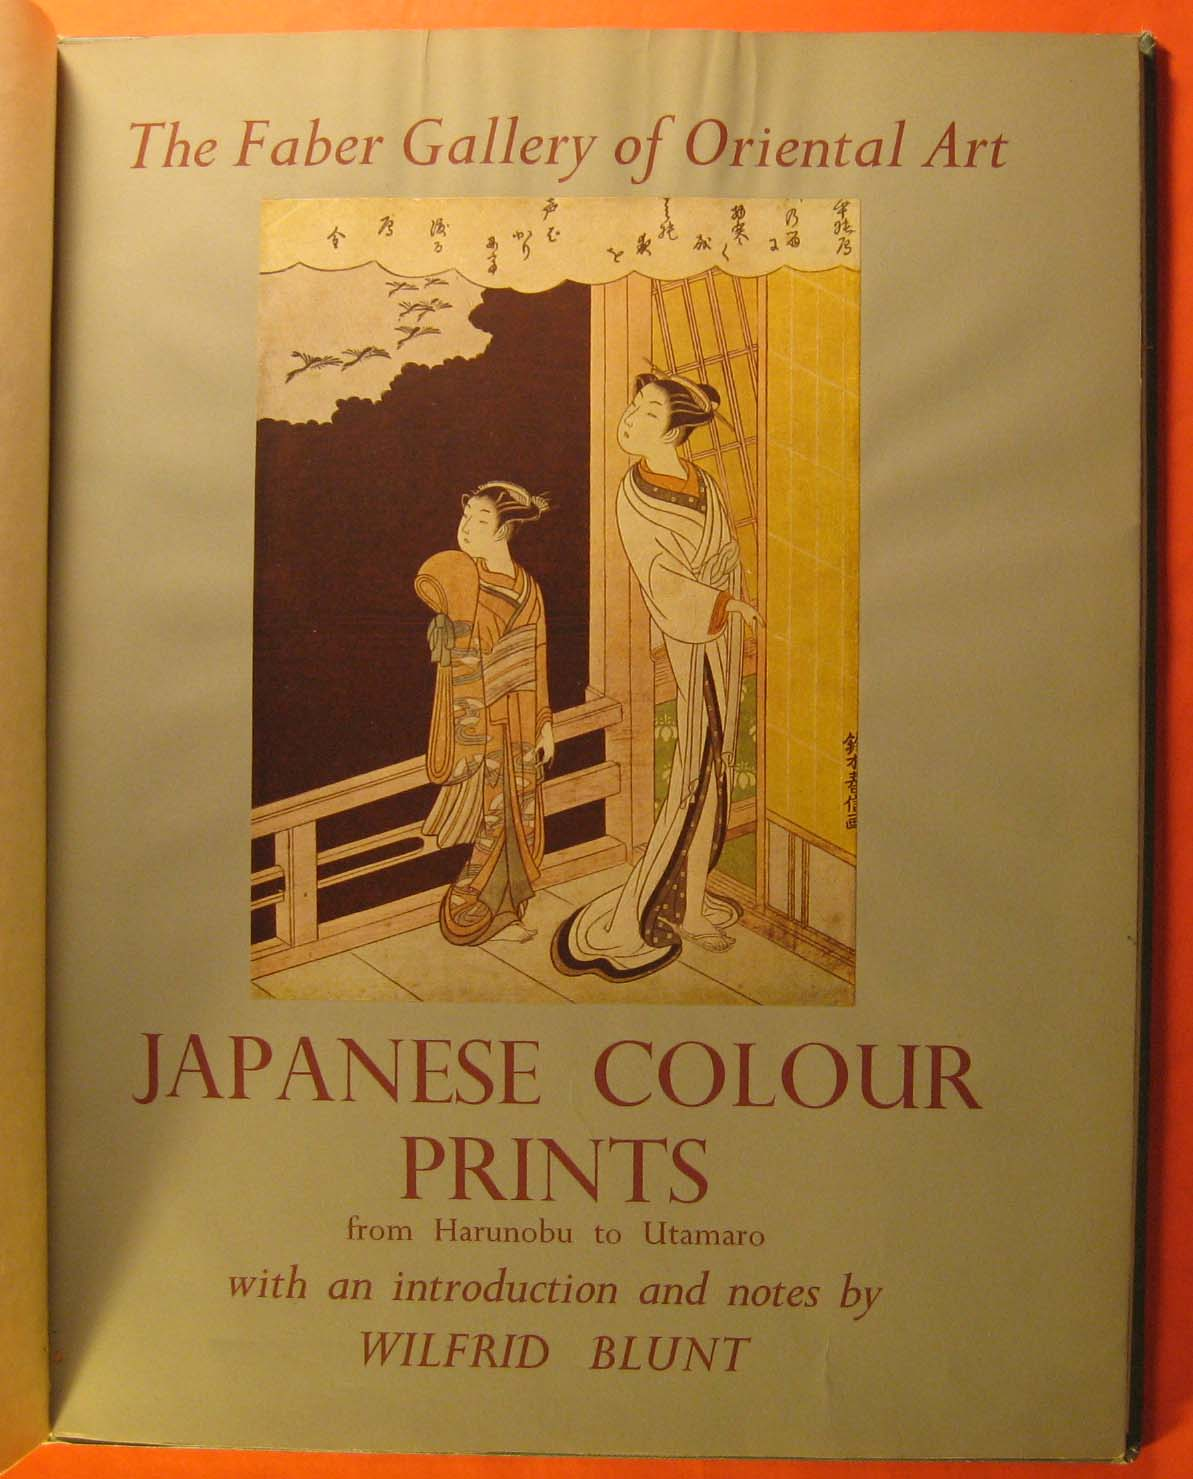 Japanese Colour Prints from Harunobu to Utamaro, Blunt, Wilfrid